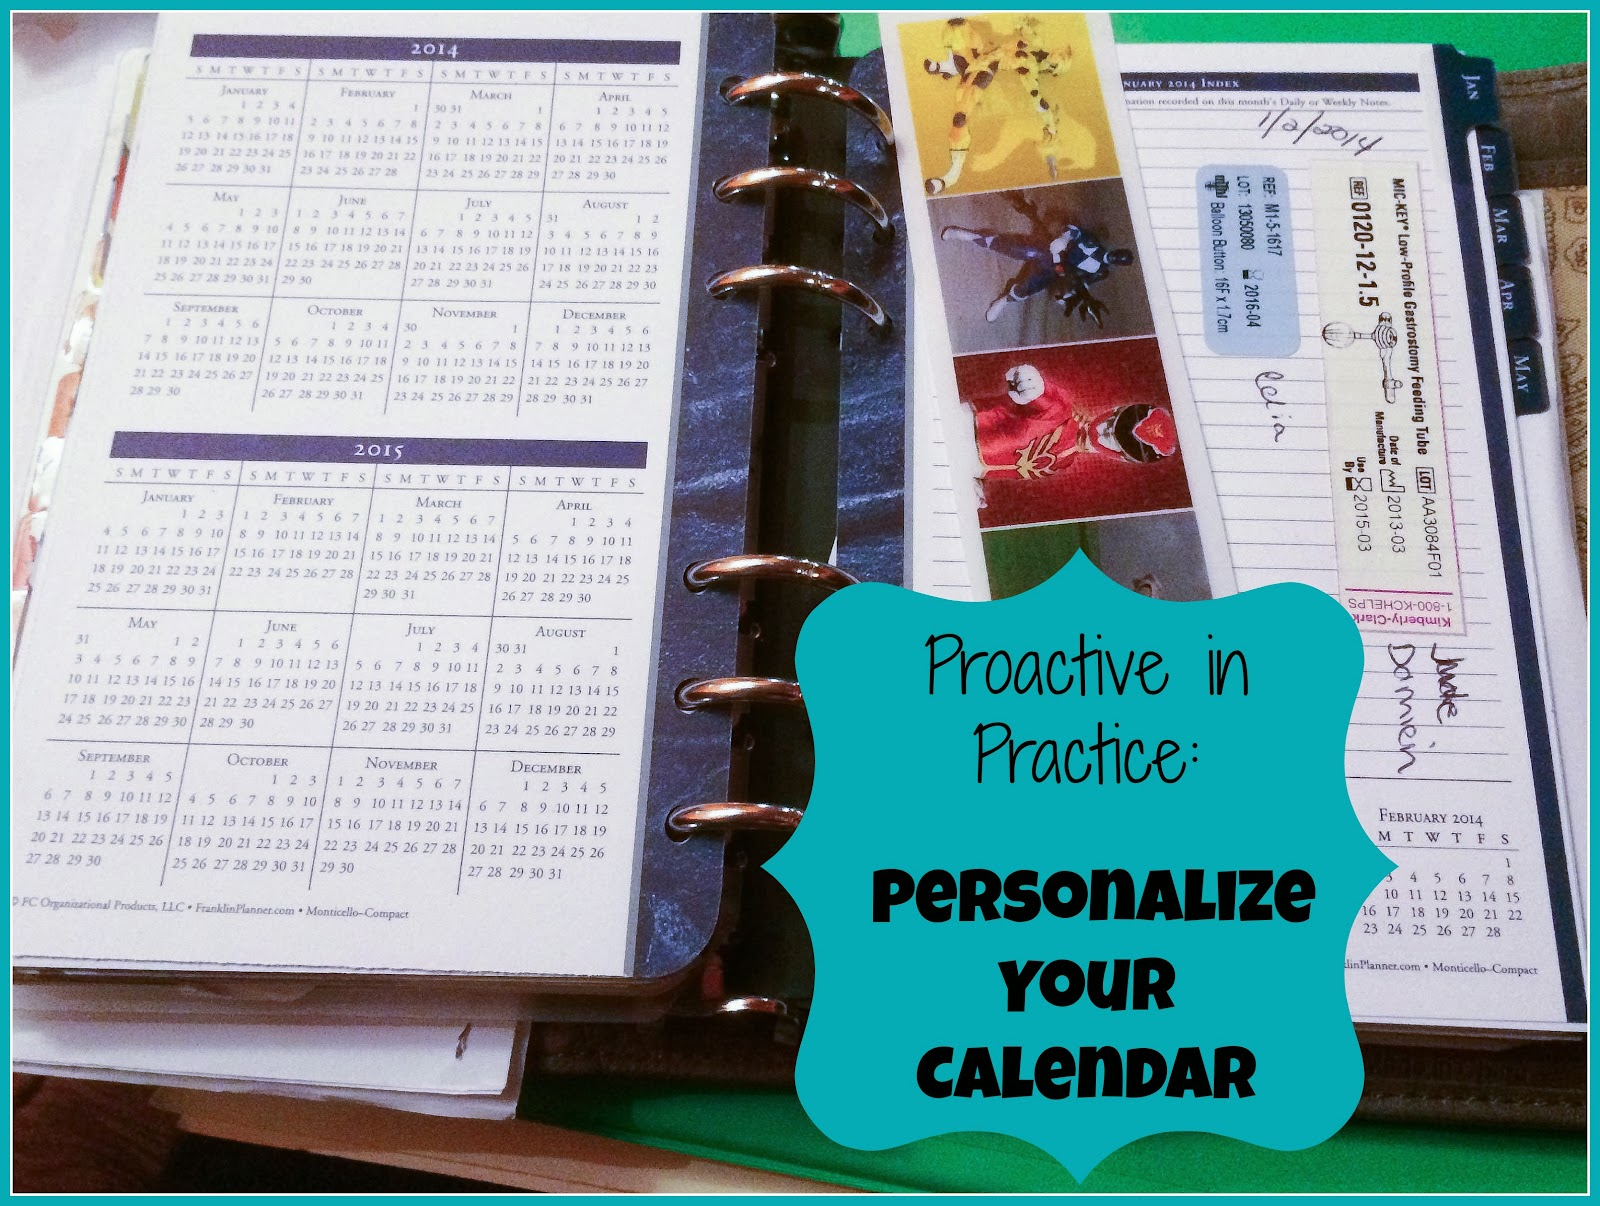 Proactive in Practice Personalize your Calendar